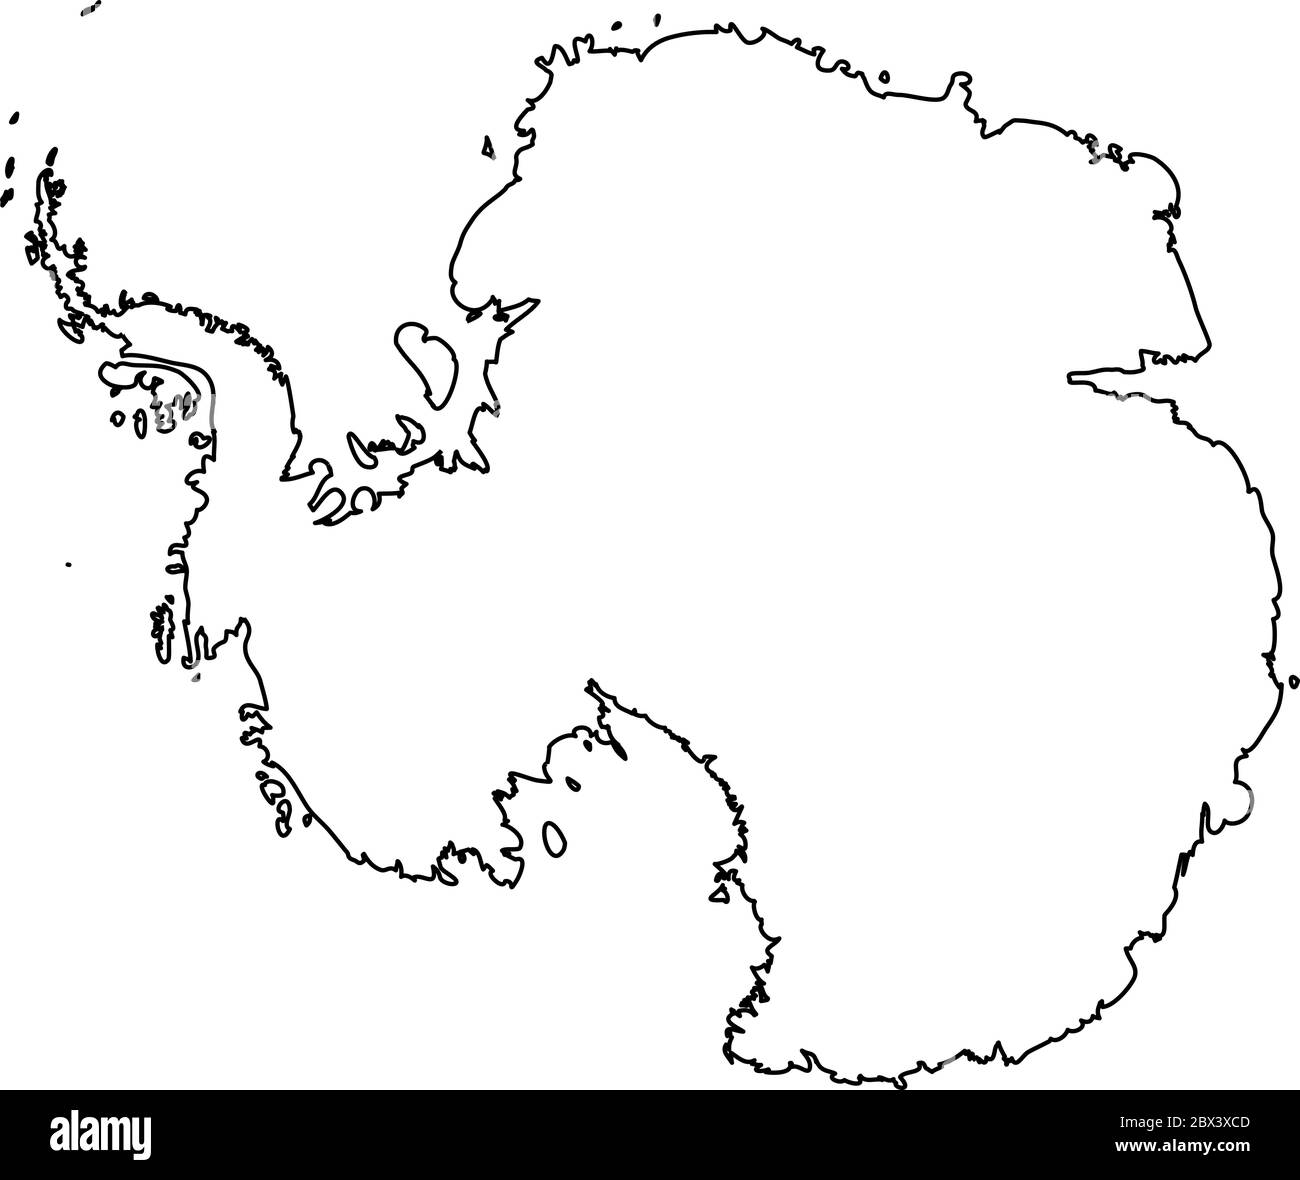 outline map of antarctica continent Antarctica Map High Resolution Stock Photography And Images Alamy outline map of antarctica continent